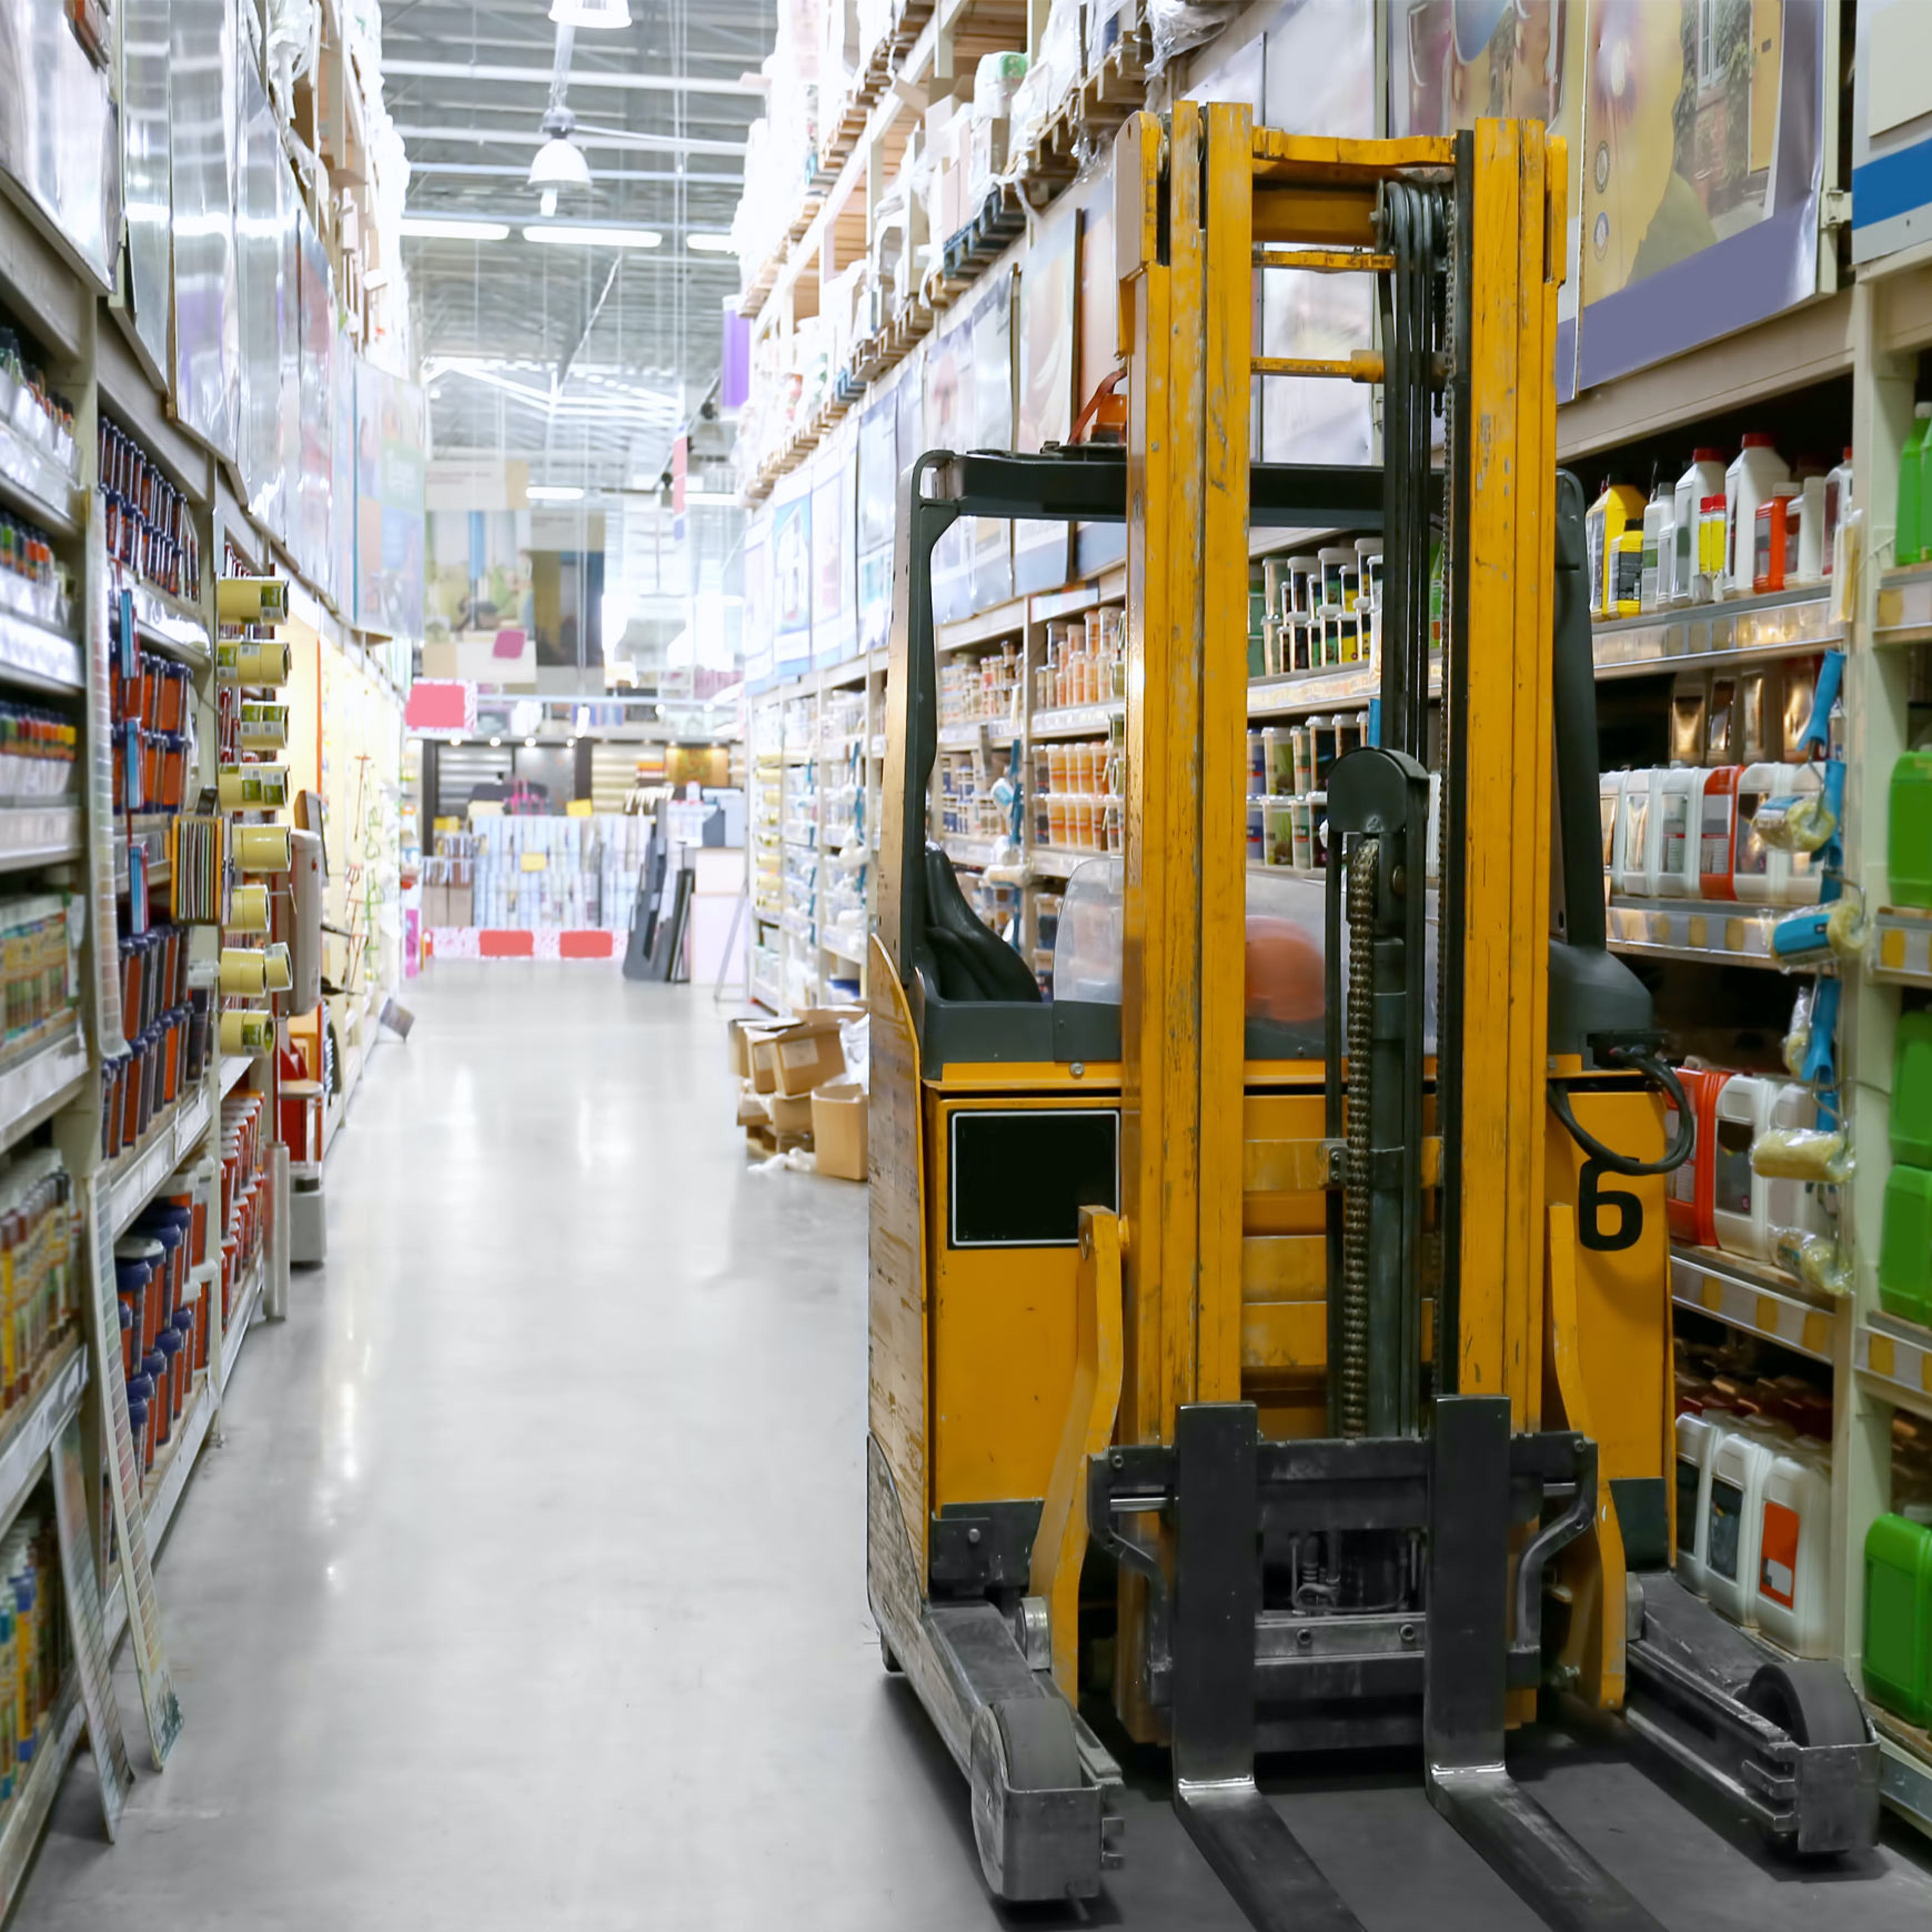 forklift in a retail store